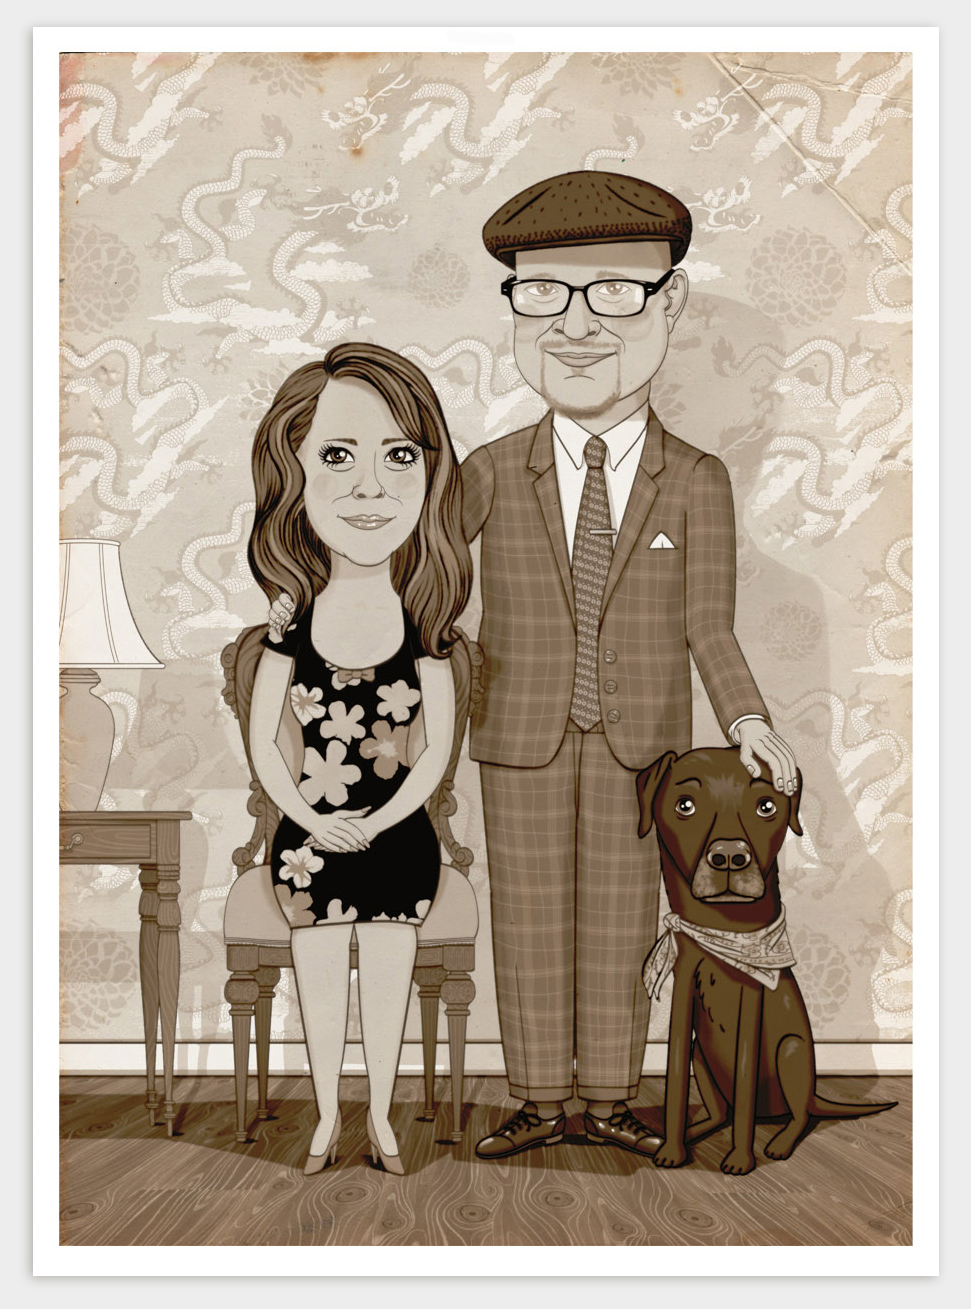 - Private commissions and corporate clients, a selection of family portraits and company employees